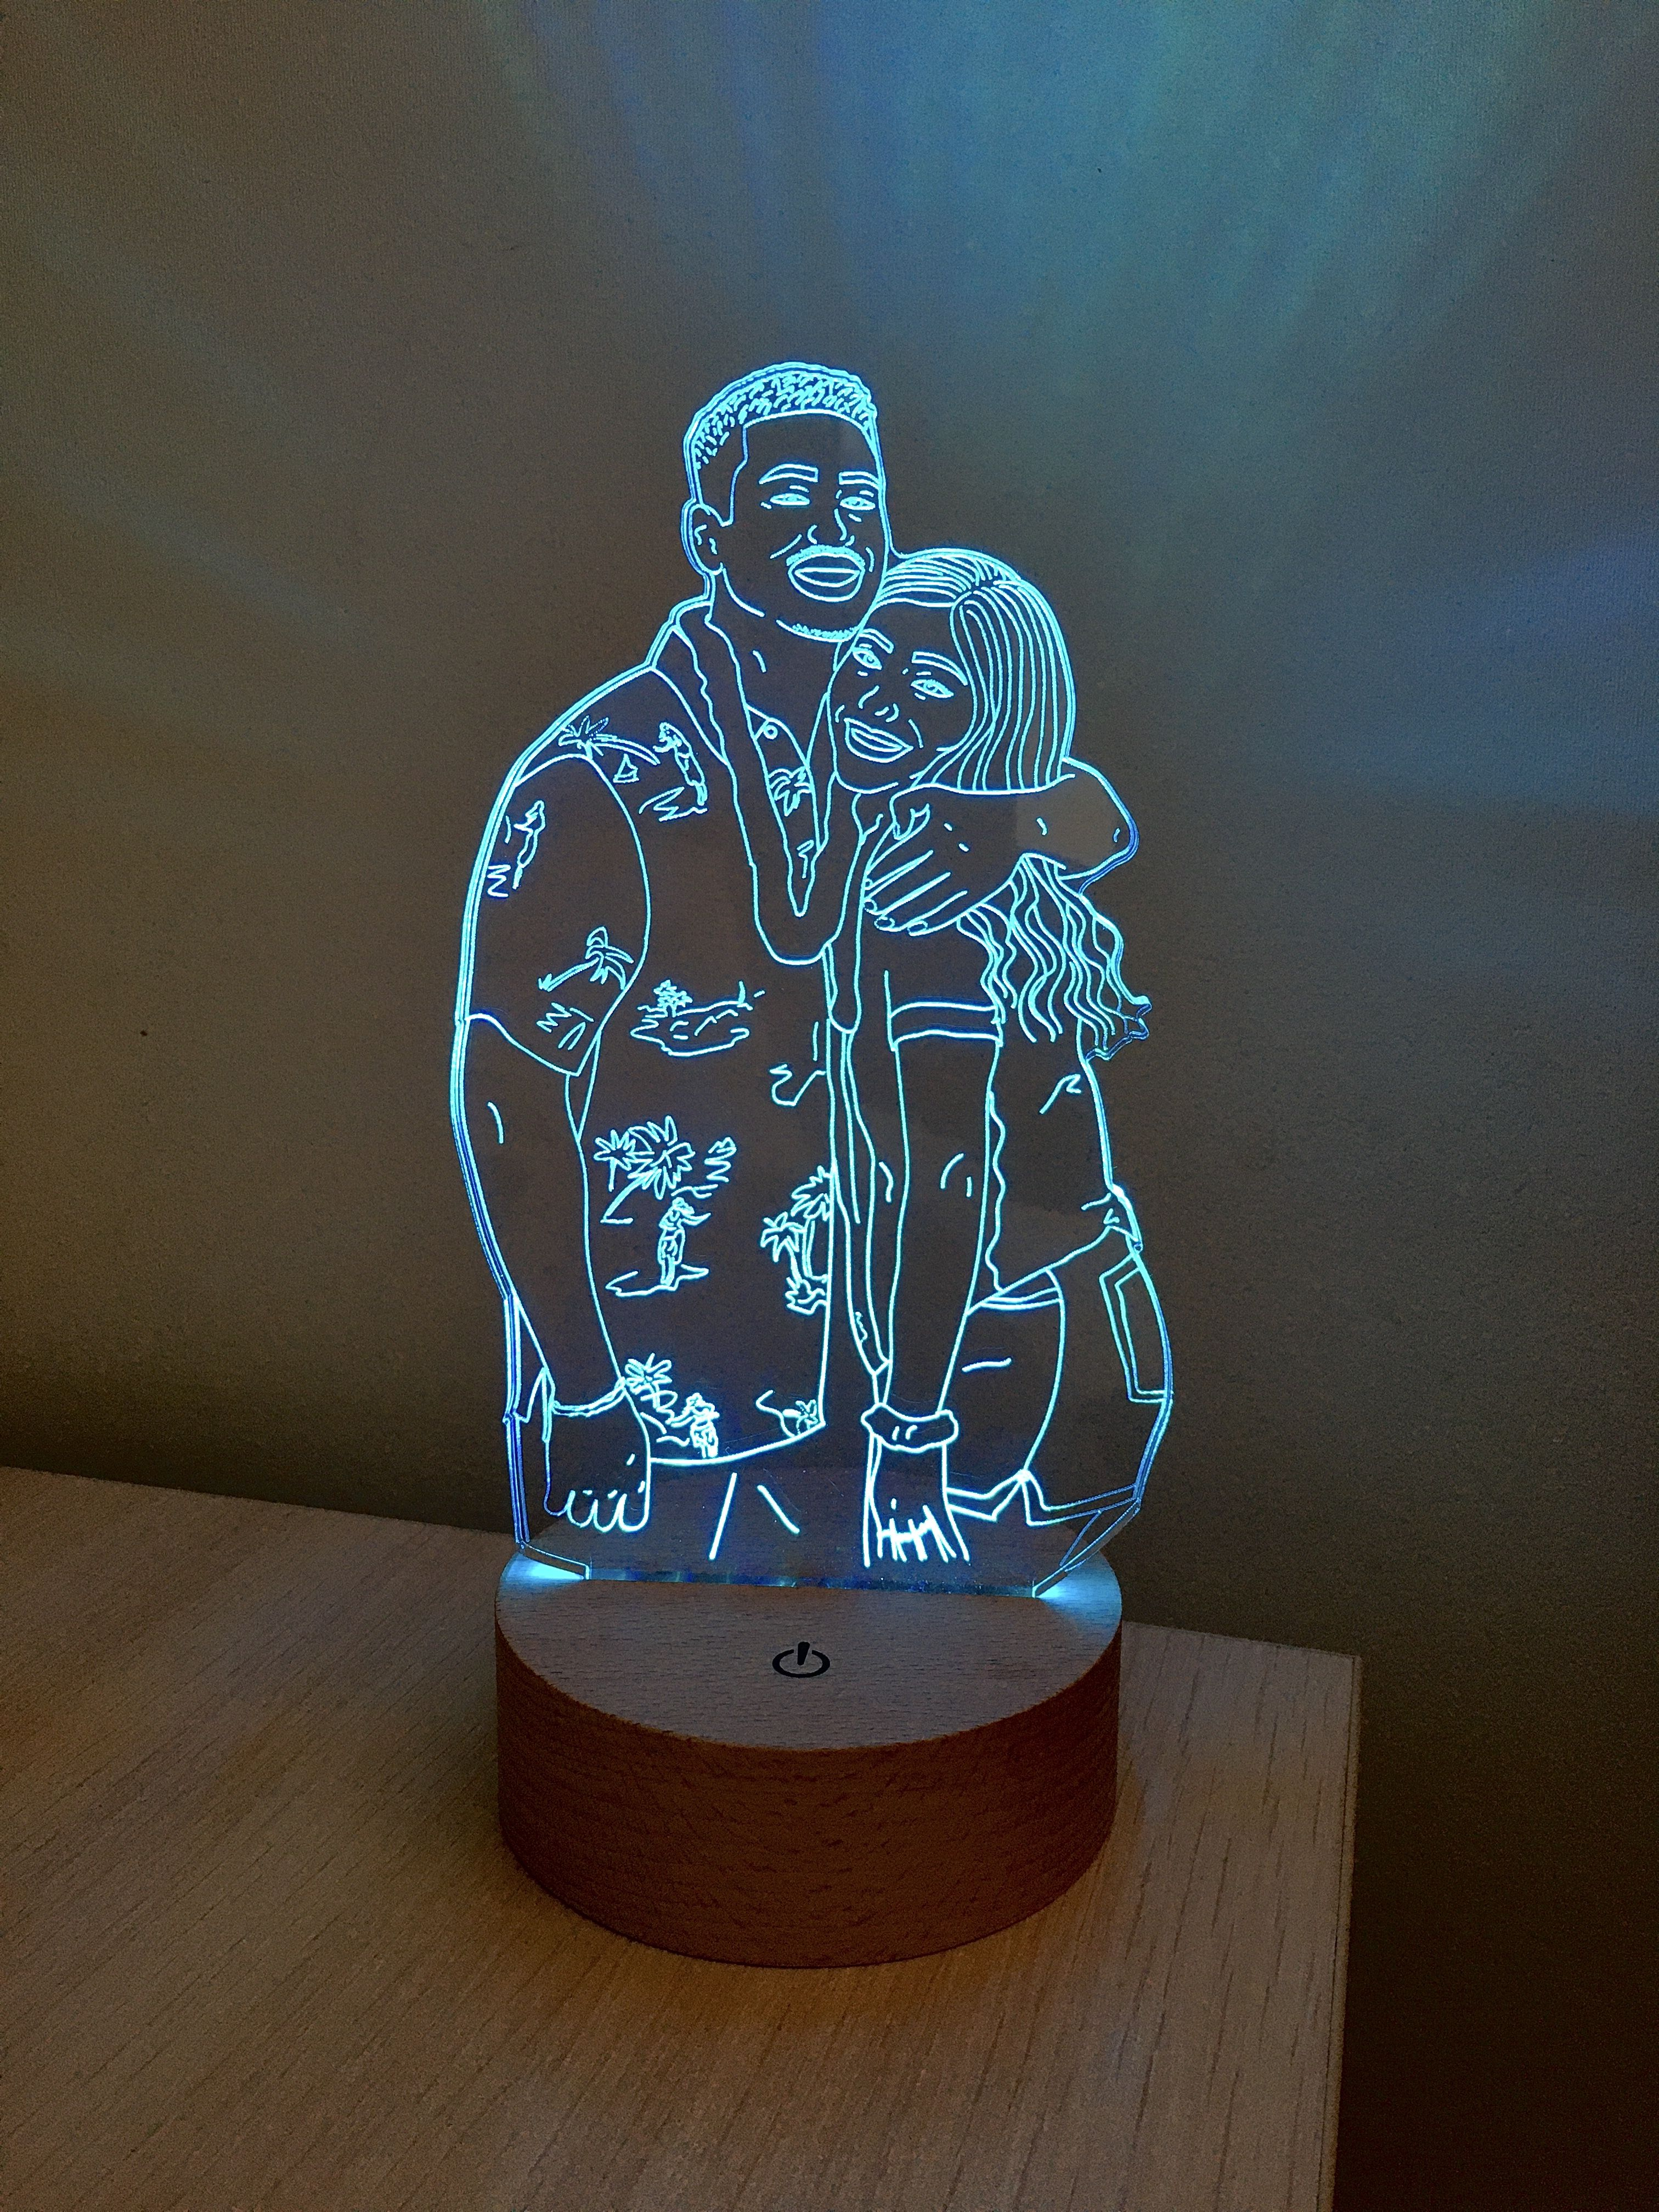 Custom Photo Desk Led Lamp Drawing From Photo 5th Anniversary Etsy In 2020 Family Photo Gifts Cute Anniversary Gifts 3d Led Lamp